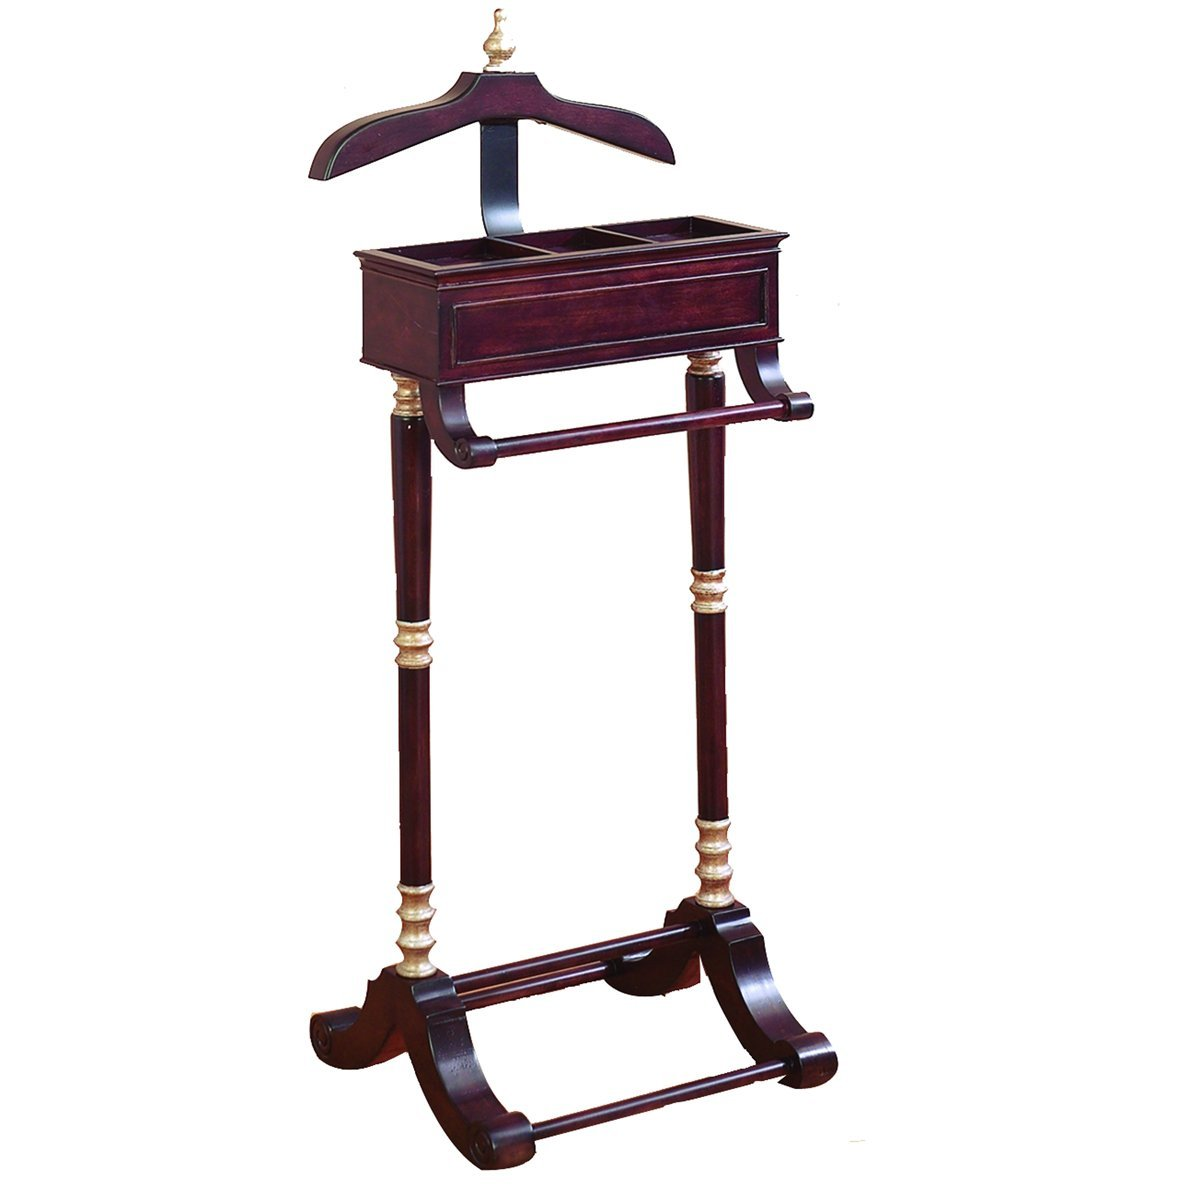 Buy Urban Designs Cherry Butler Valet Stand Clothing Rack in Cheap